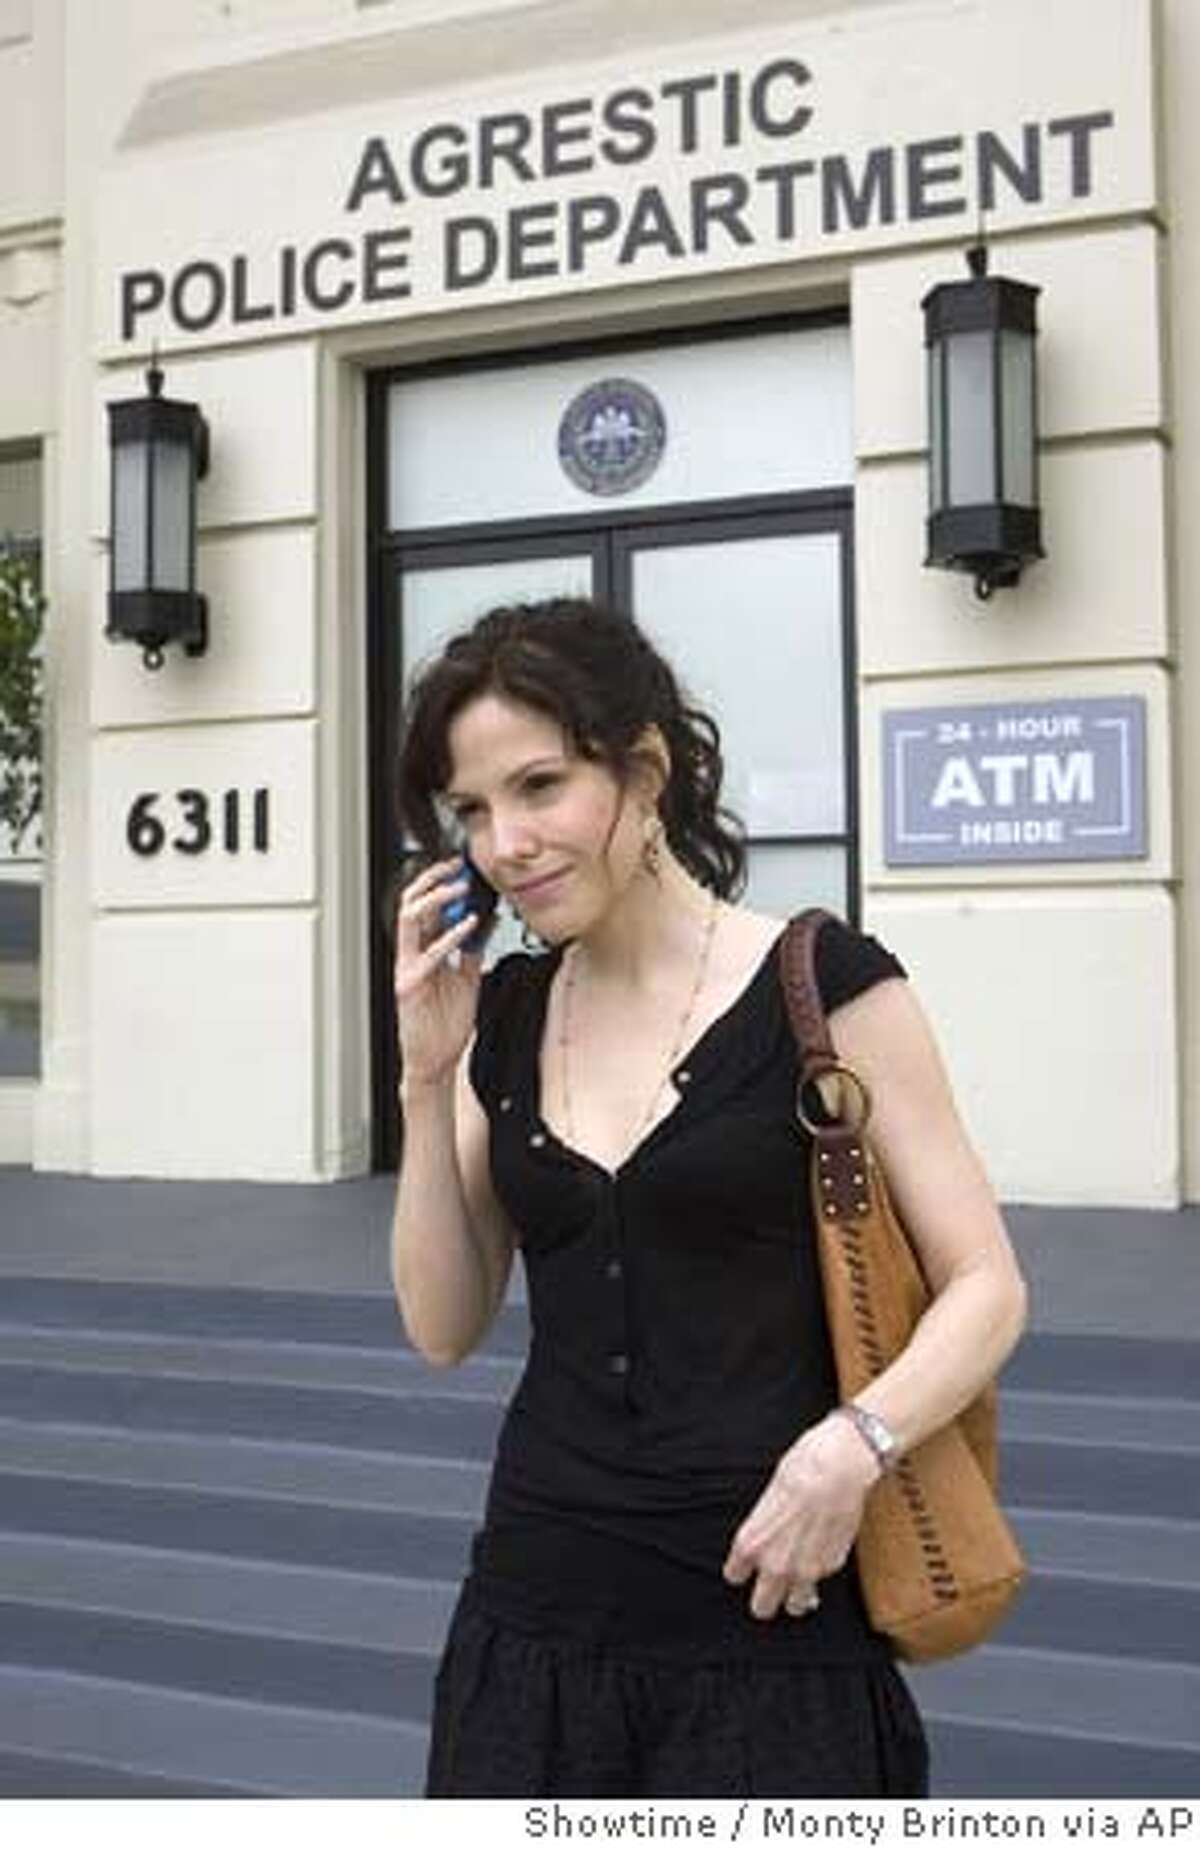 This undated photo, provided by Showtime, shows actress Mary-Louise Parker as Nancy Botwin in Showtime's comedy series